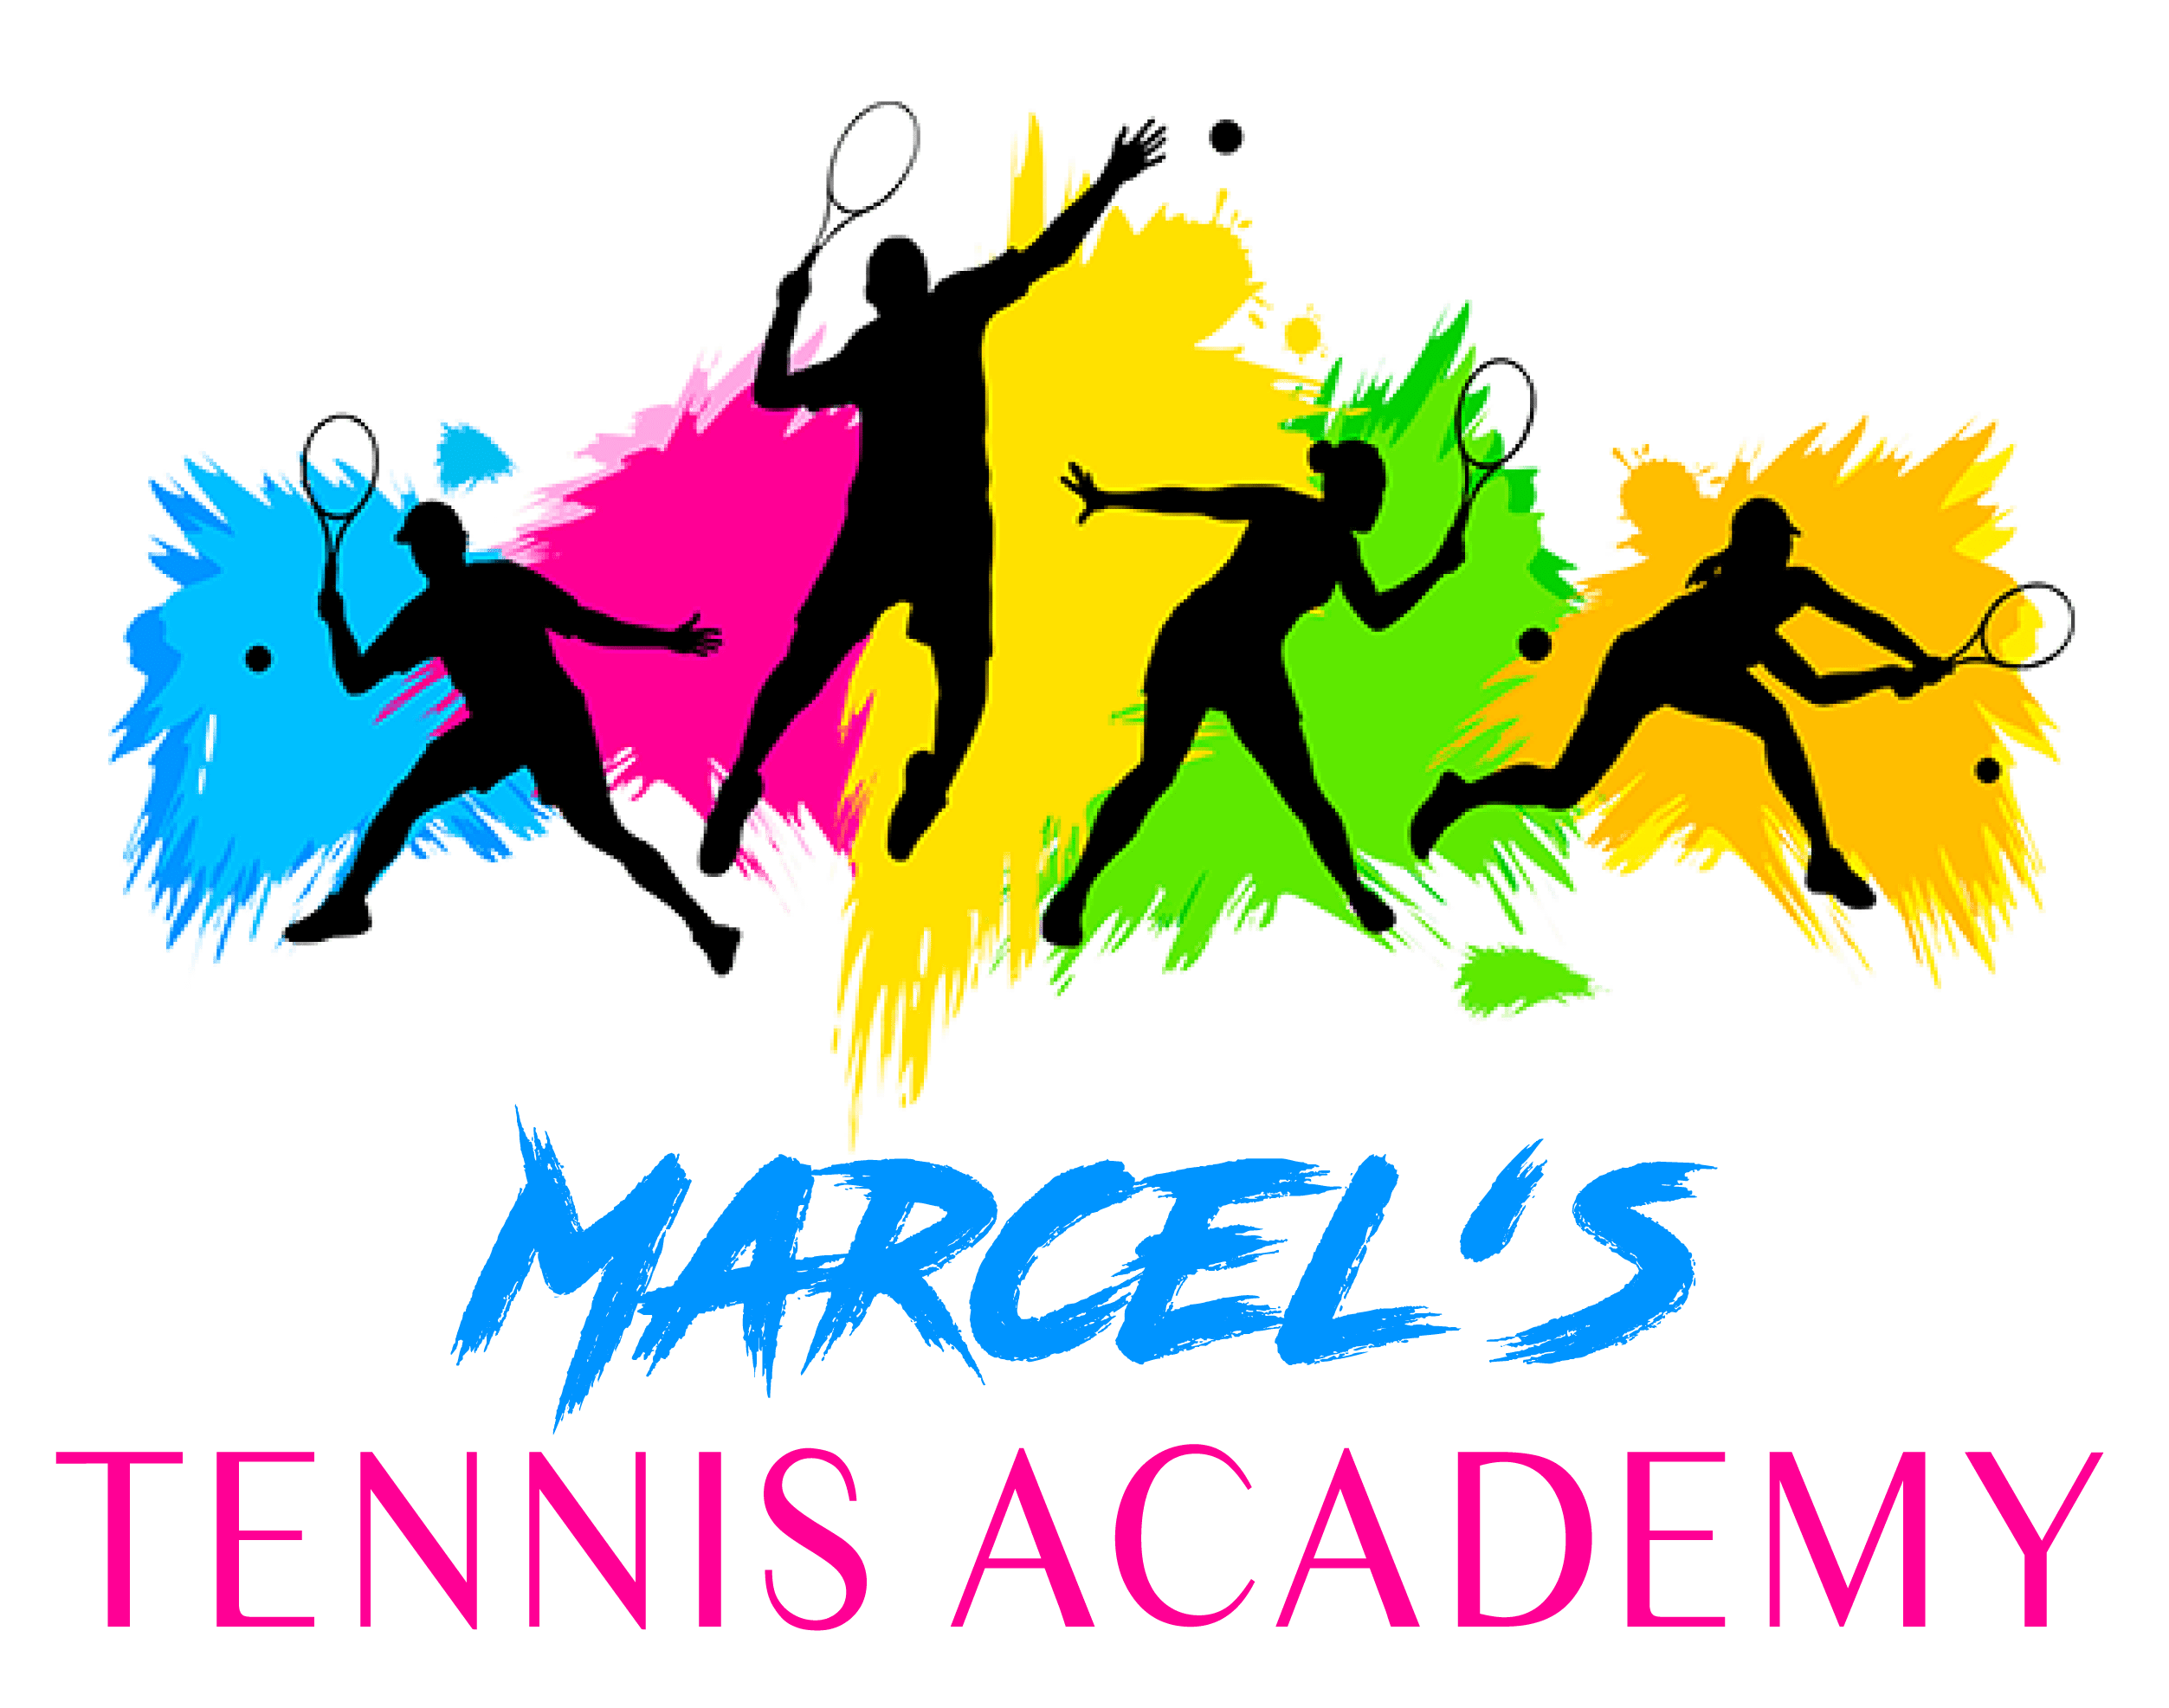 Marcels Tennis Academy